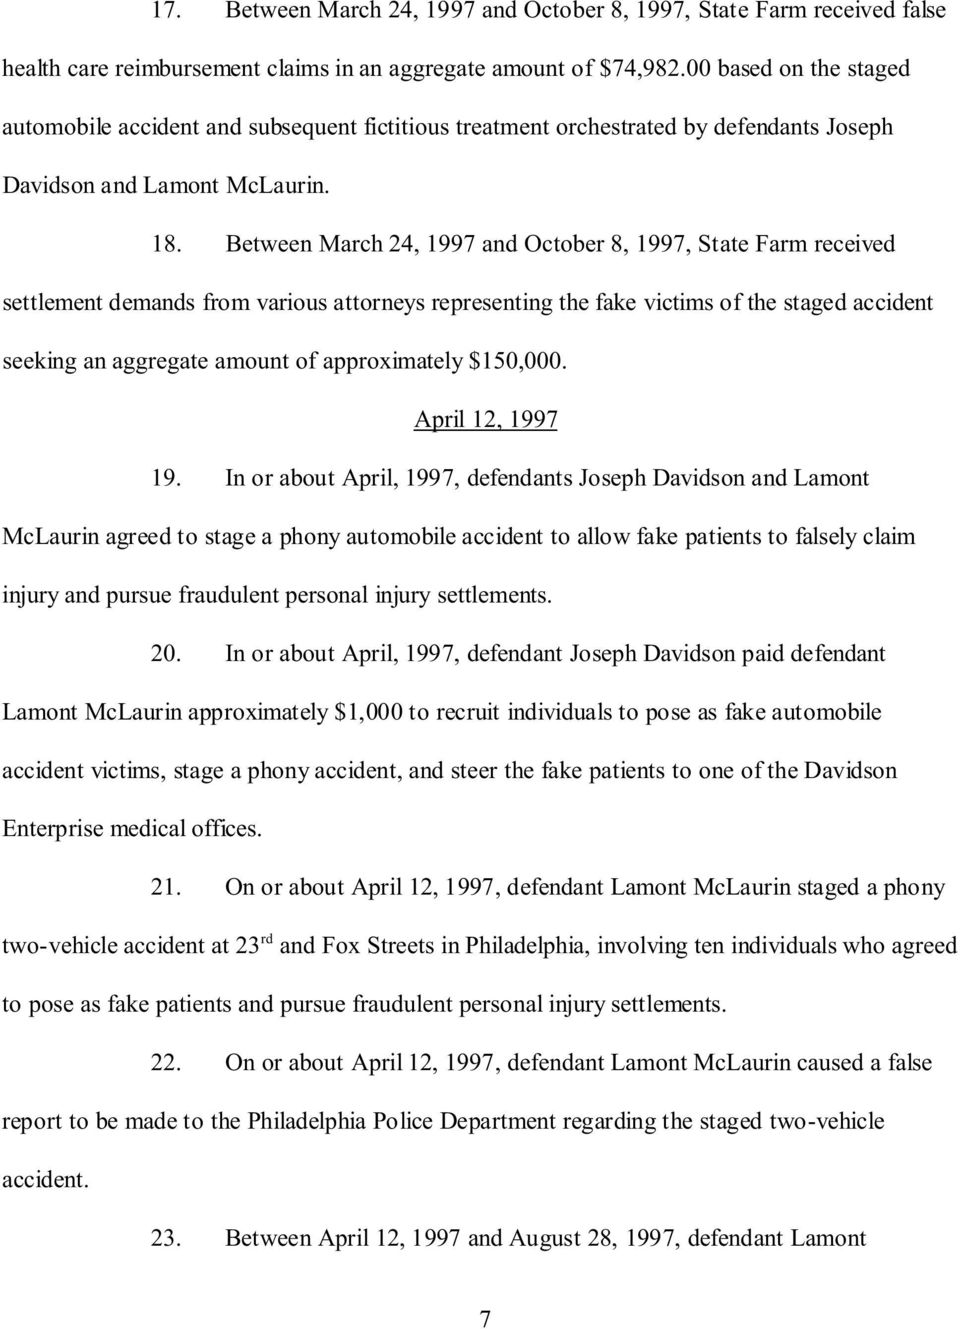 Between March 24, 1997 and October 8, 1997, State Farm received settlement demands from various attorneys representing the fake victims of the staged accident seeking an aggregate amount of